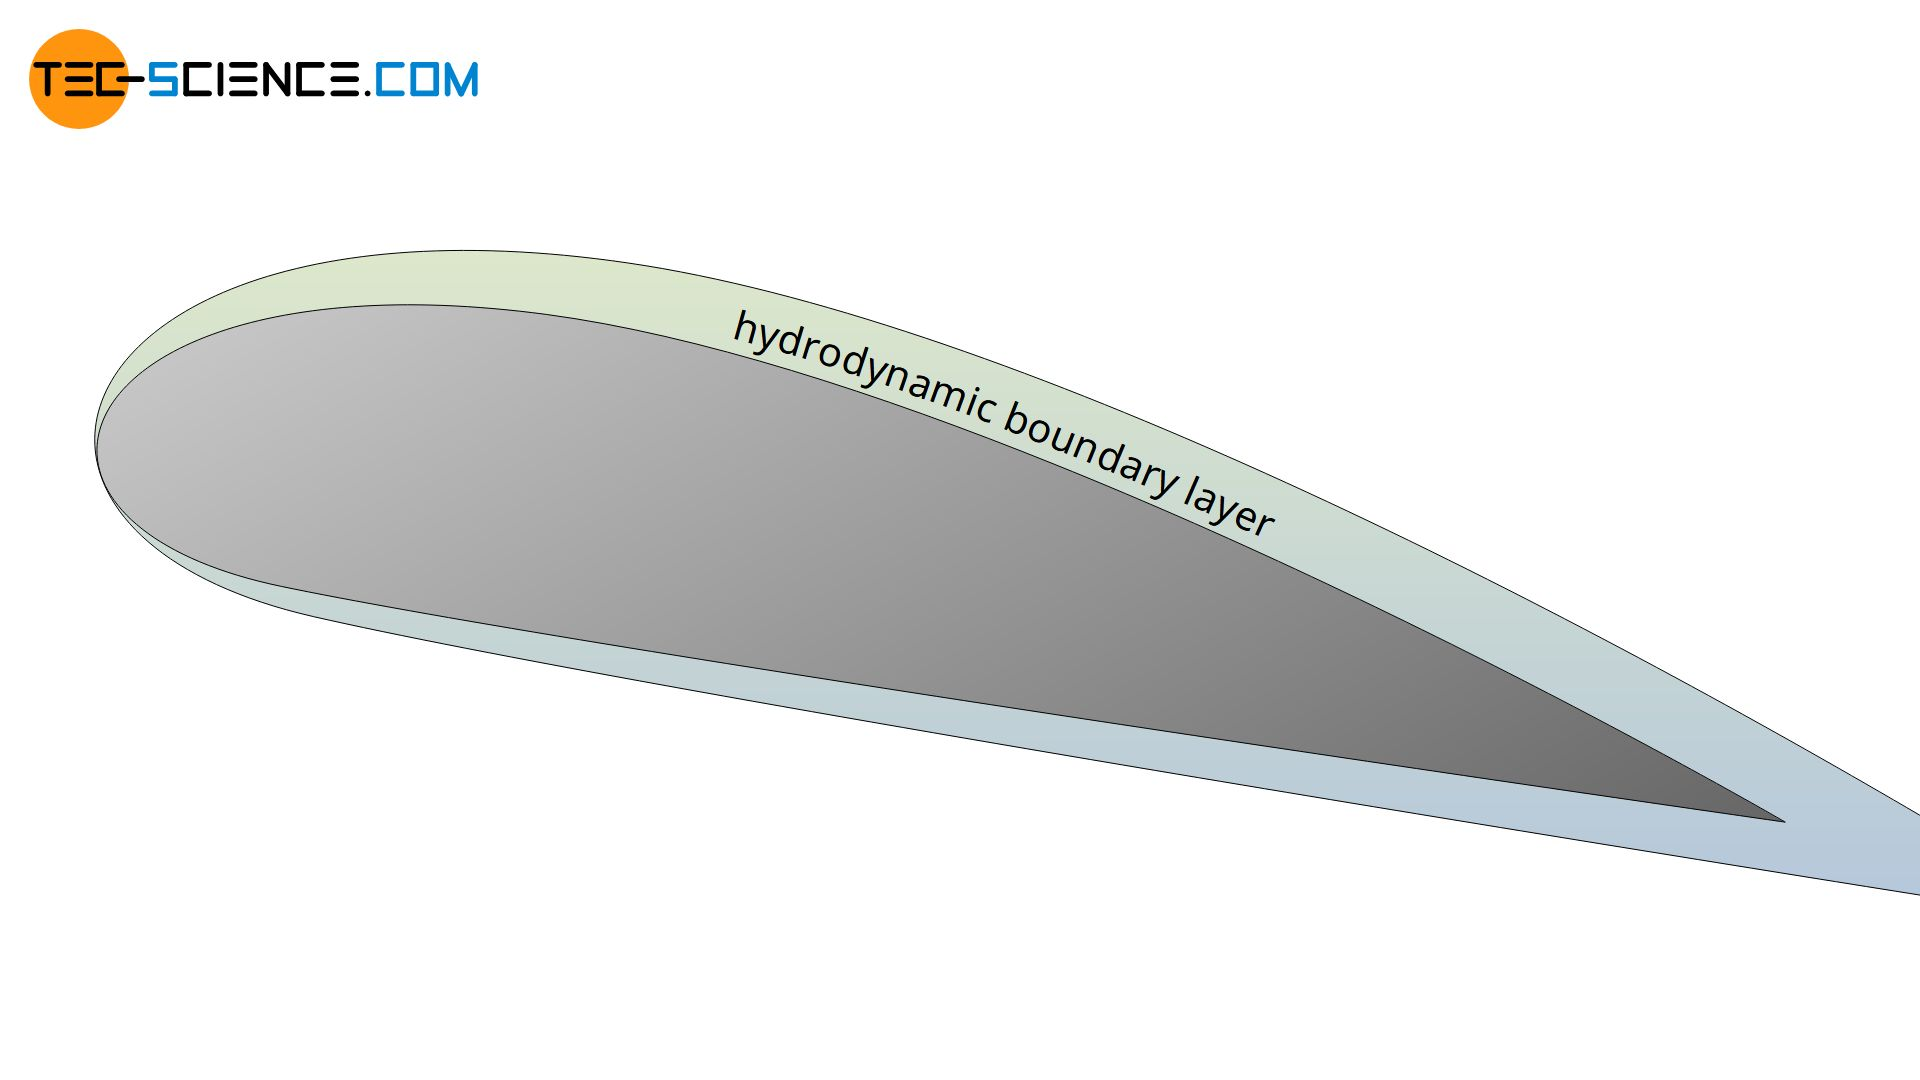 Hydrodynamic boundary layer around the profile of a wing